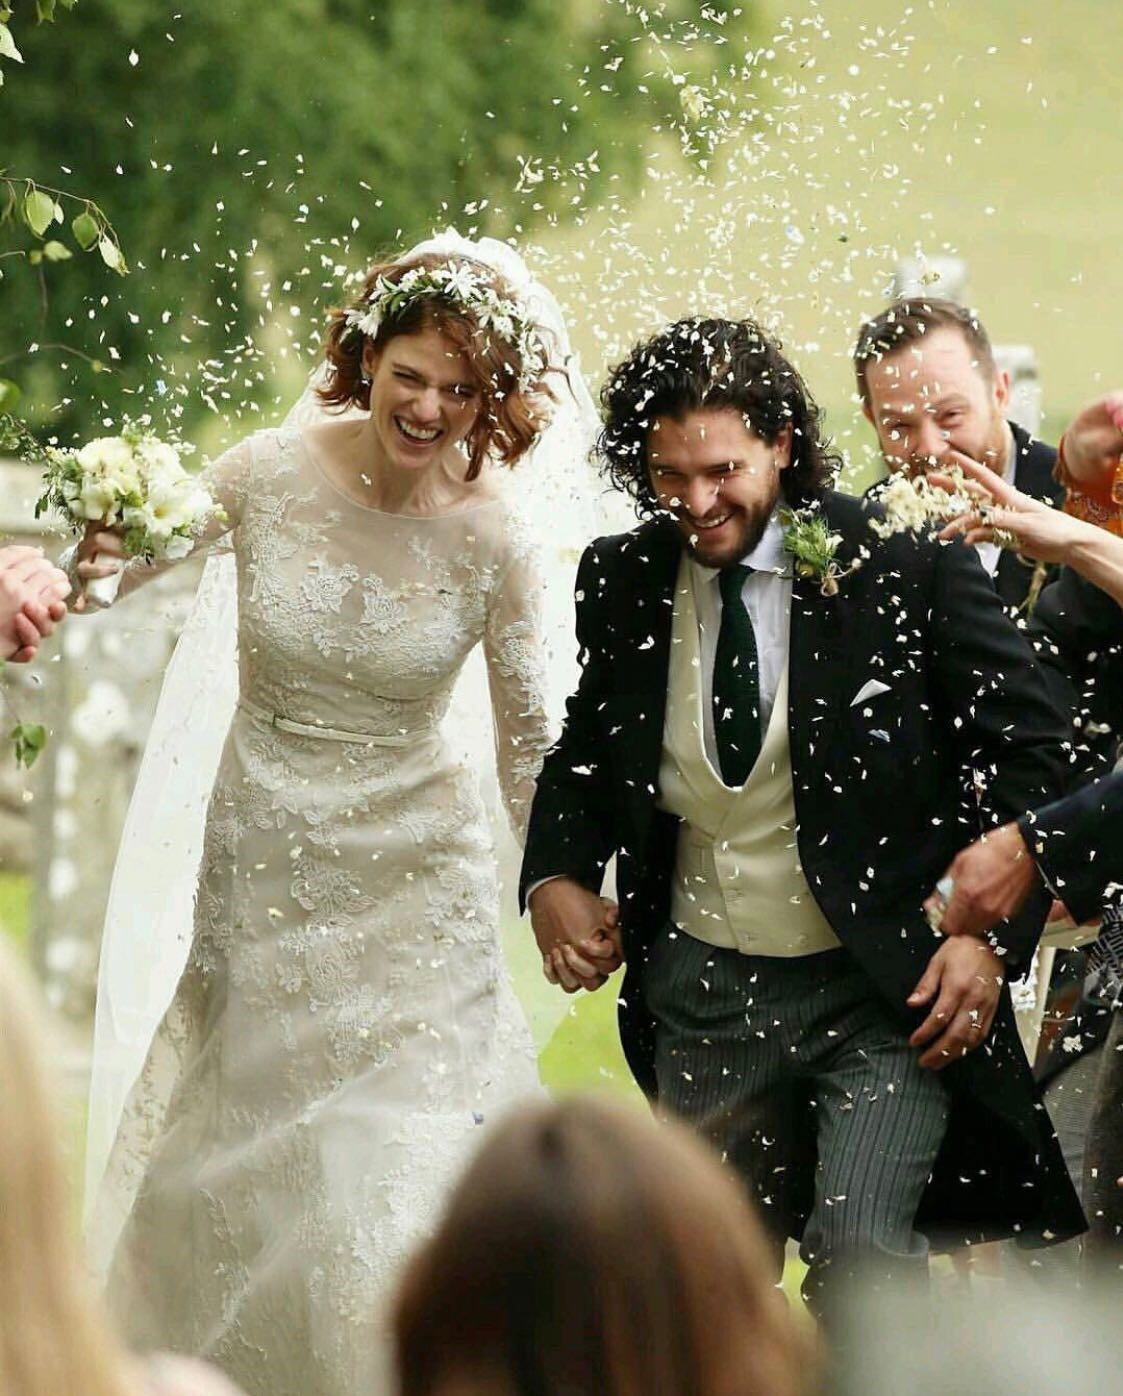 Game of Thronesun Jon Snowu ve Ygrittei dünya evine girdi 65